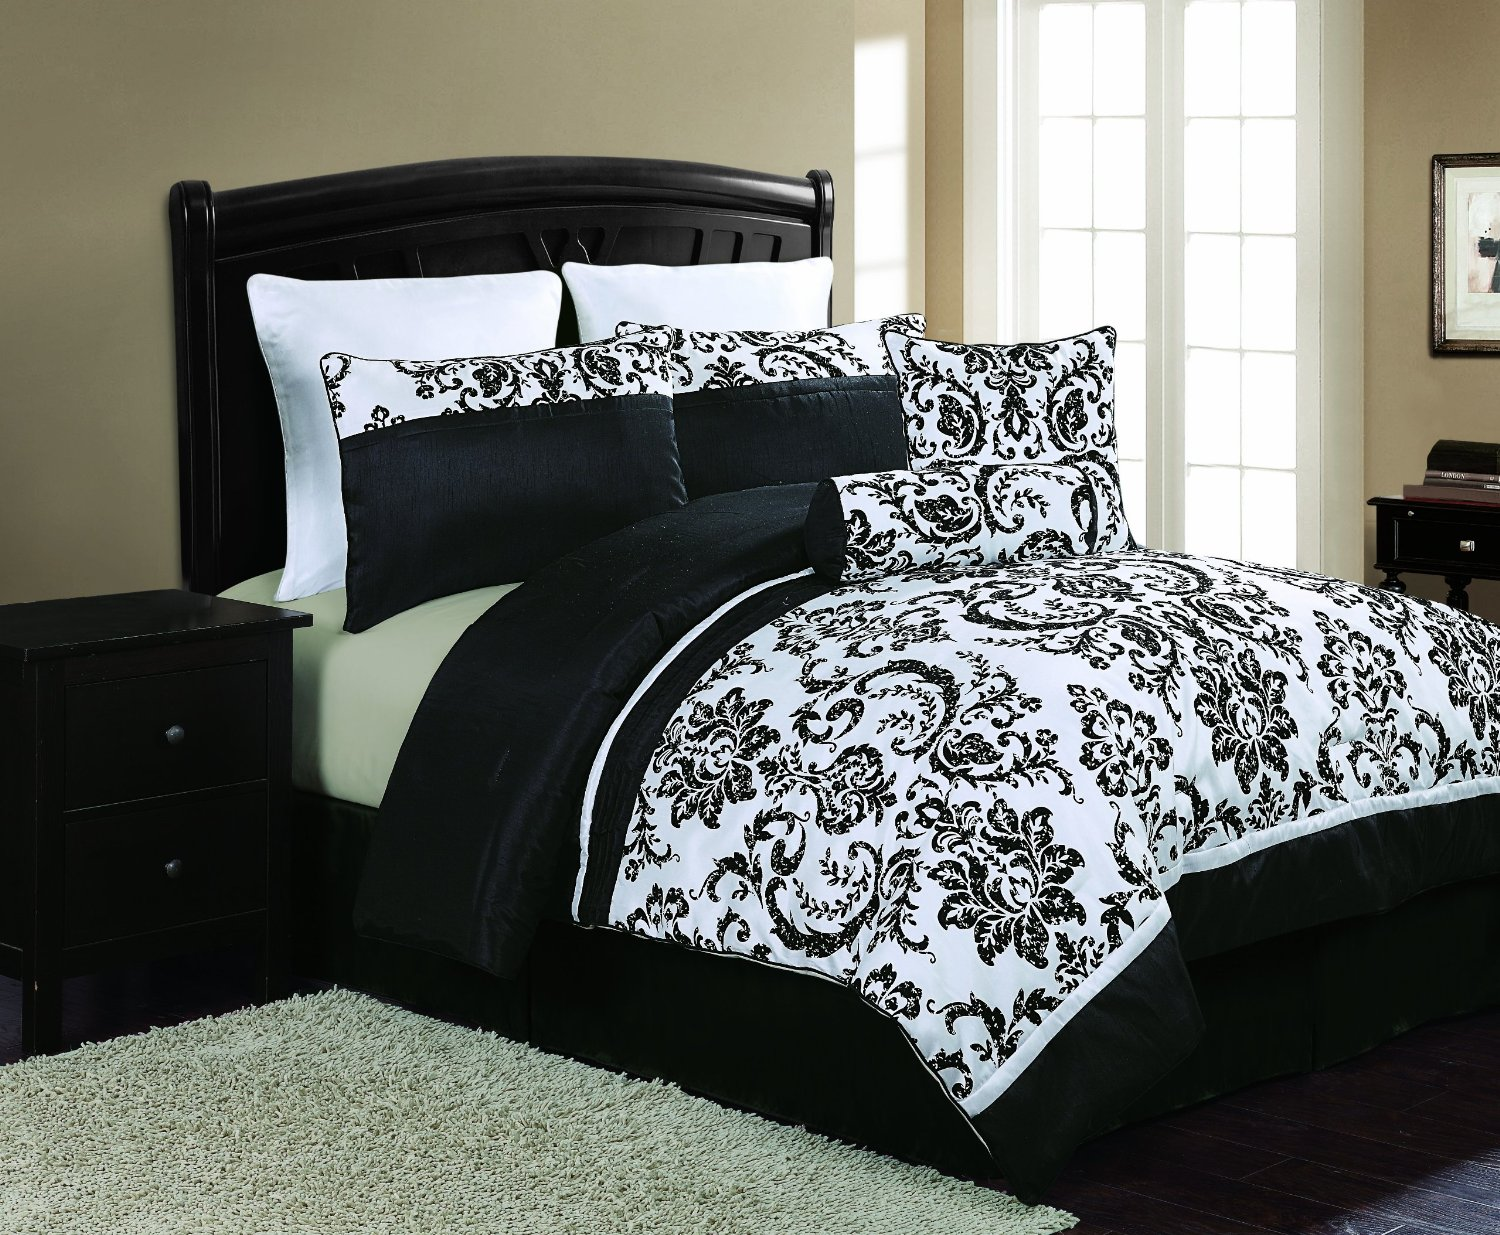 Black And White Bedding Sets That Will Make Your Room Look Great Sleepy Deep